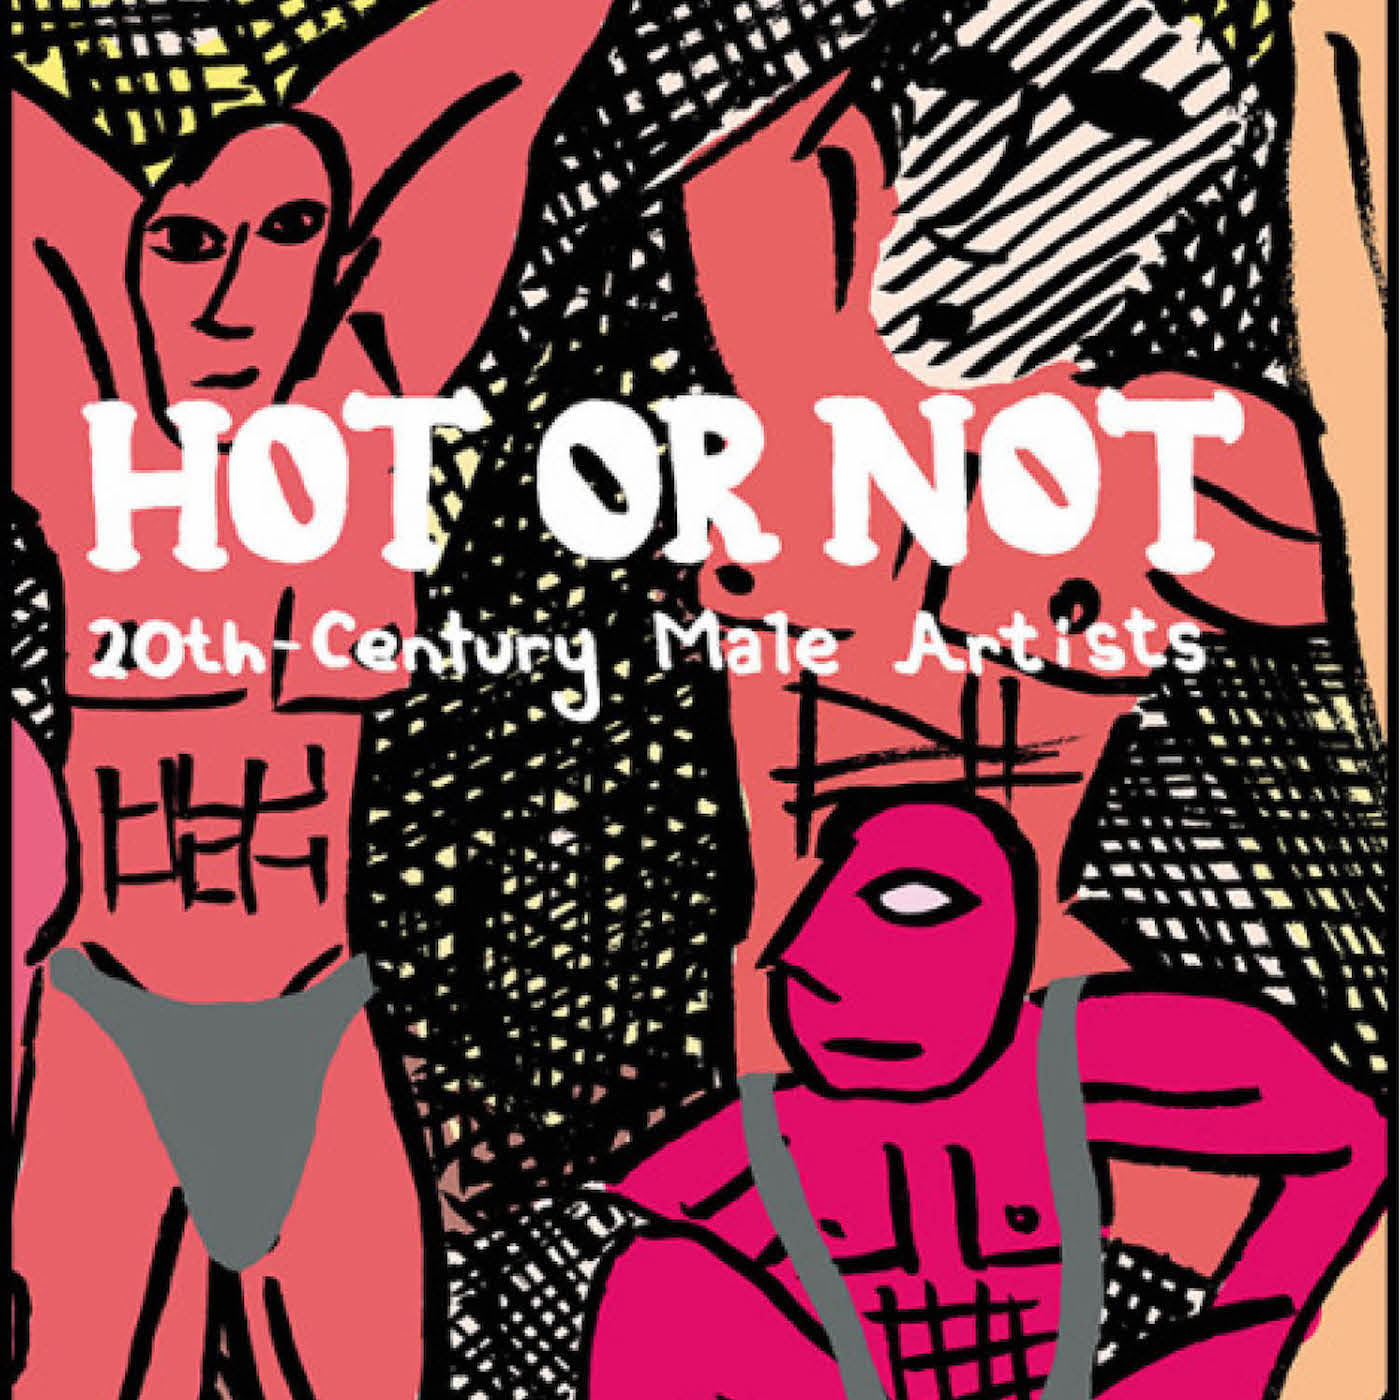 Detail of the cover of Jessica Campbell's <em>Hot or Not: 20th Century Male Artists</em> (courtesy the artist and Koyama Press)